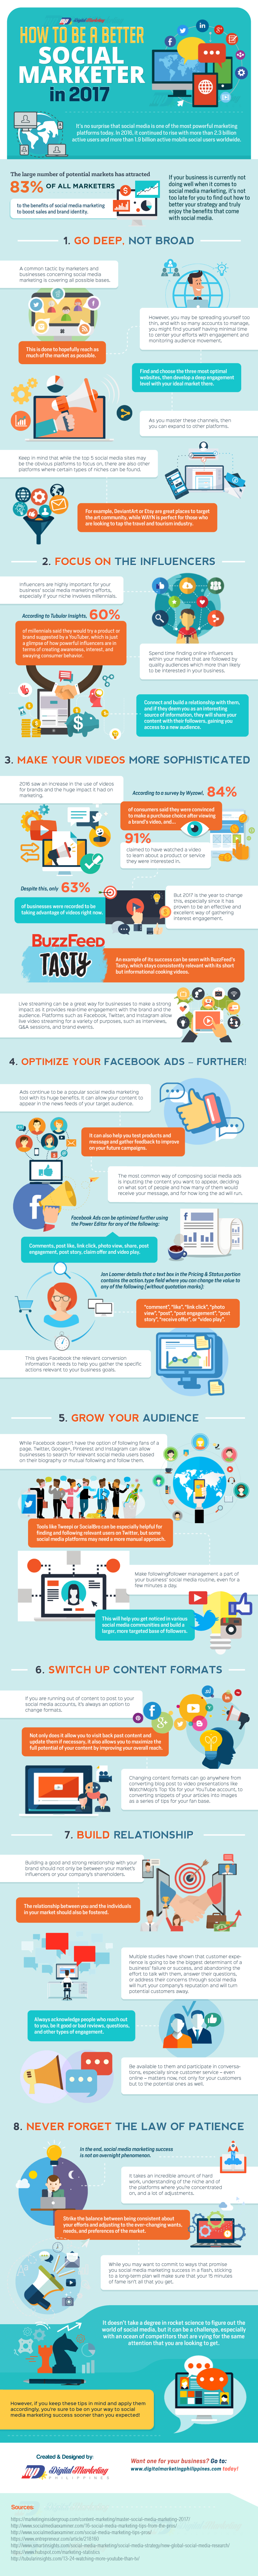 8 Ways to Become a Better Social Marketer Today - infographic